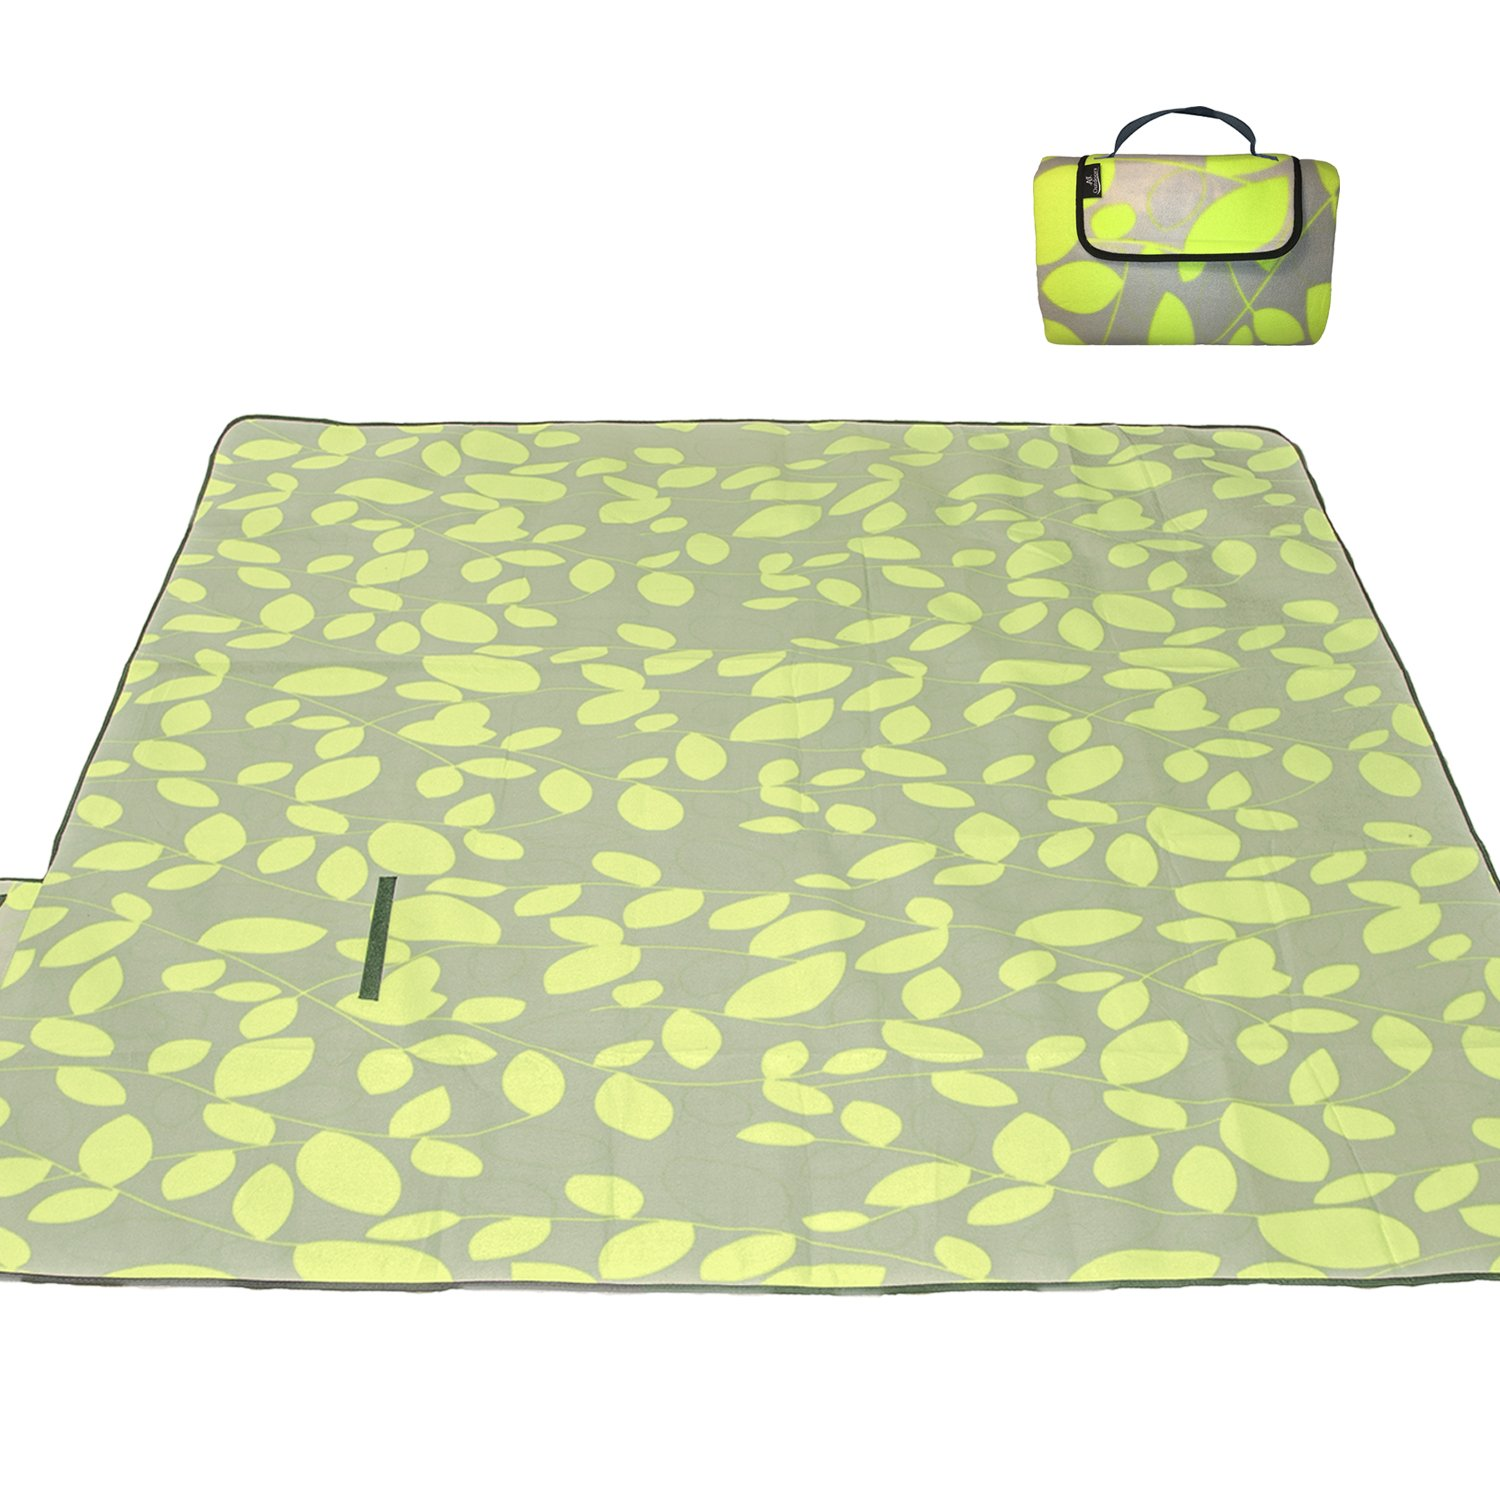 Portable /& Easy to fold Perfect Camping Blanket//Beach Blanket Waterproof with Cozy Polar Fleece Top 80x72 Light Weight XXLarge Premium 3-Layer Most Durable Outdoor Blanket//Picnic Blanket